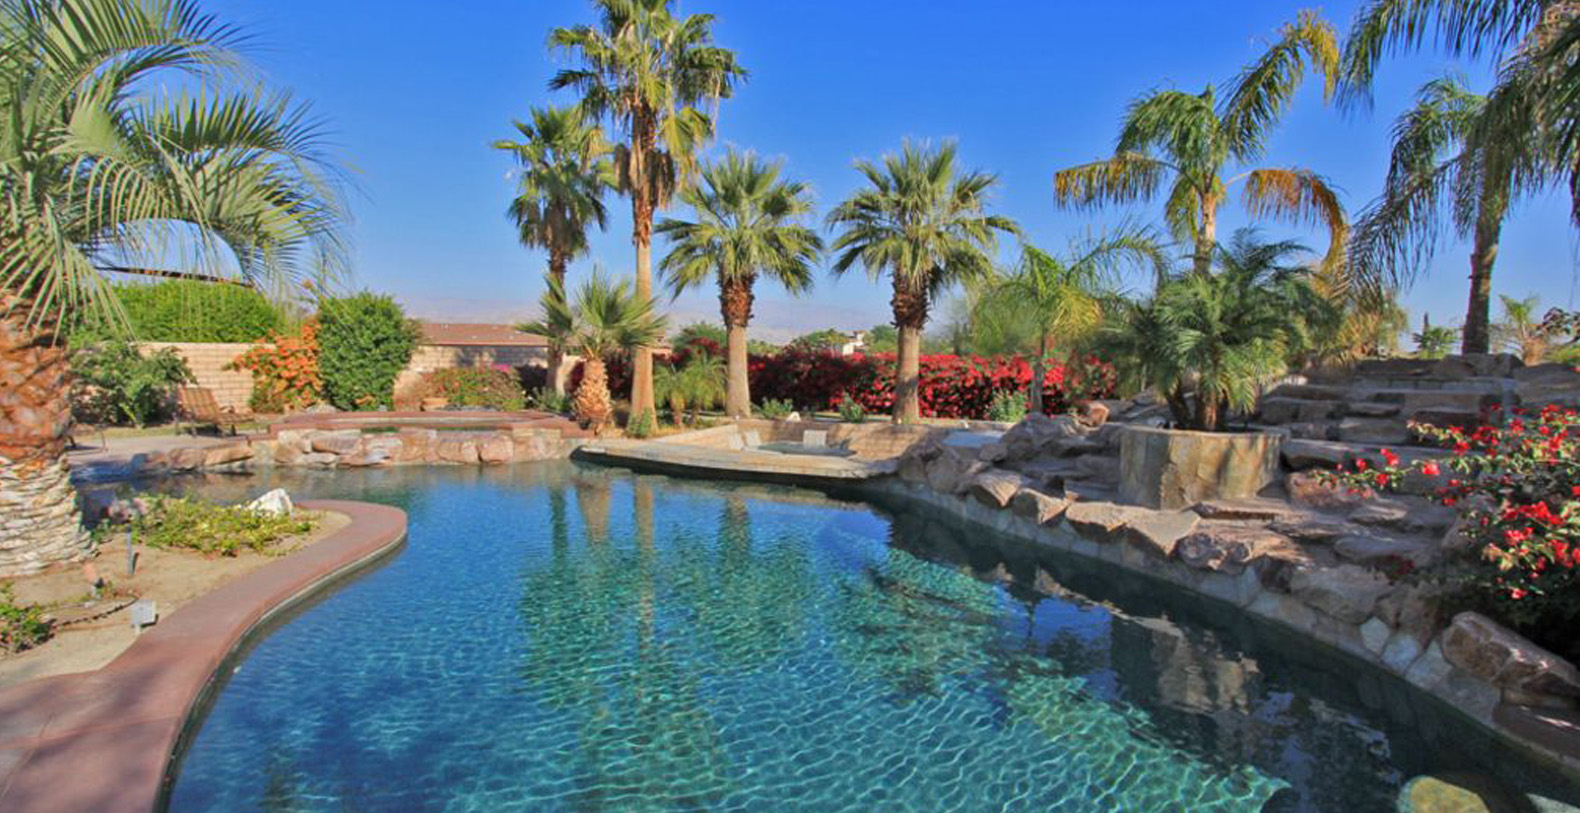 My Oasis Palm Springs California Vacation Rentals